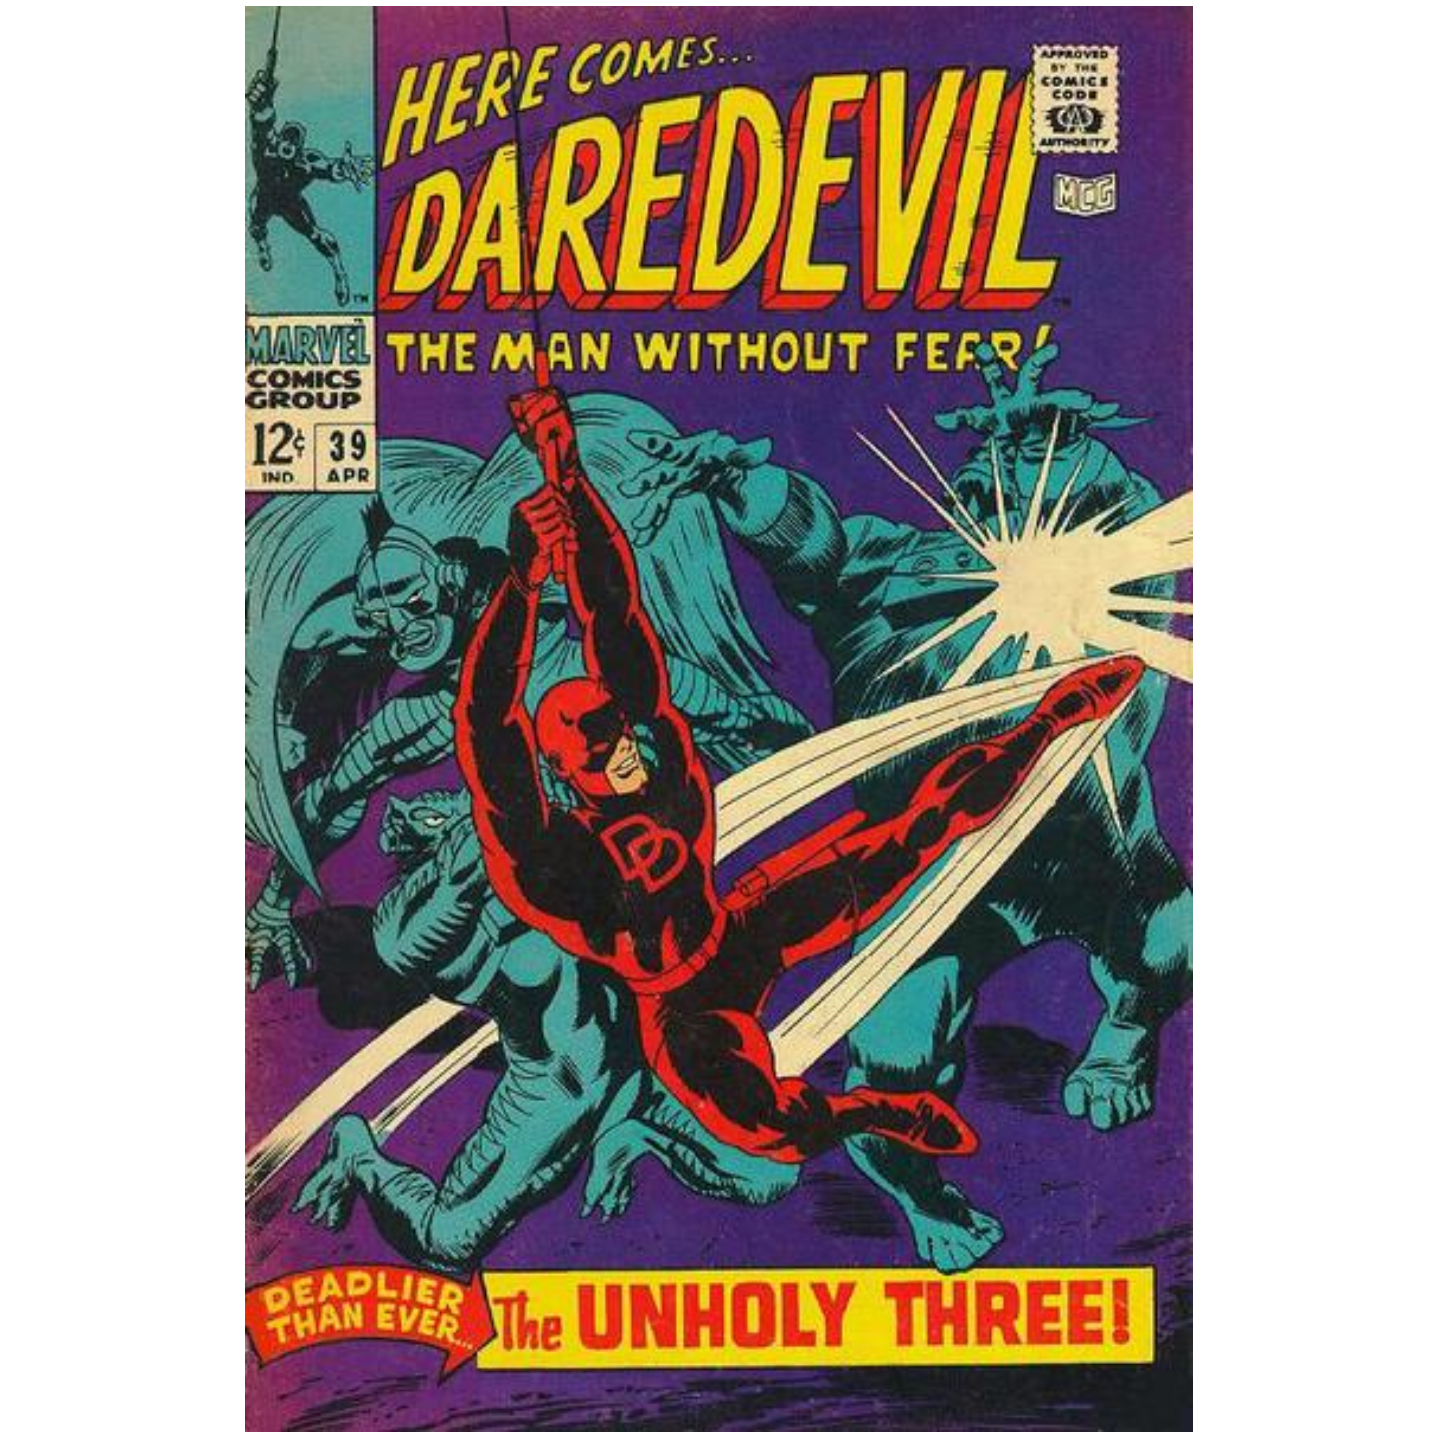 DAREDEVIL #39 (KEY ISSUE)